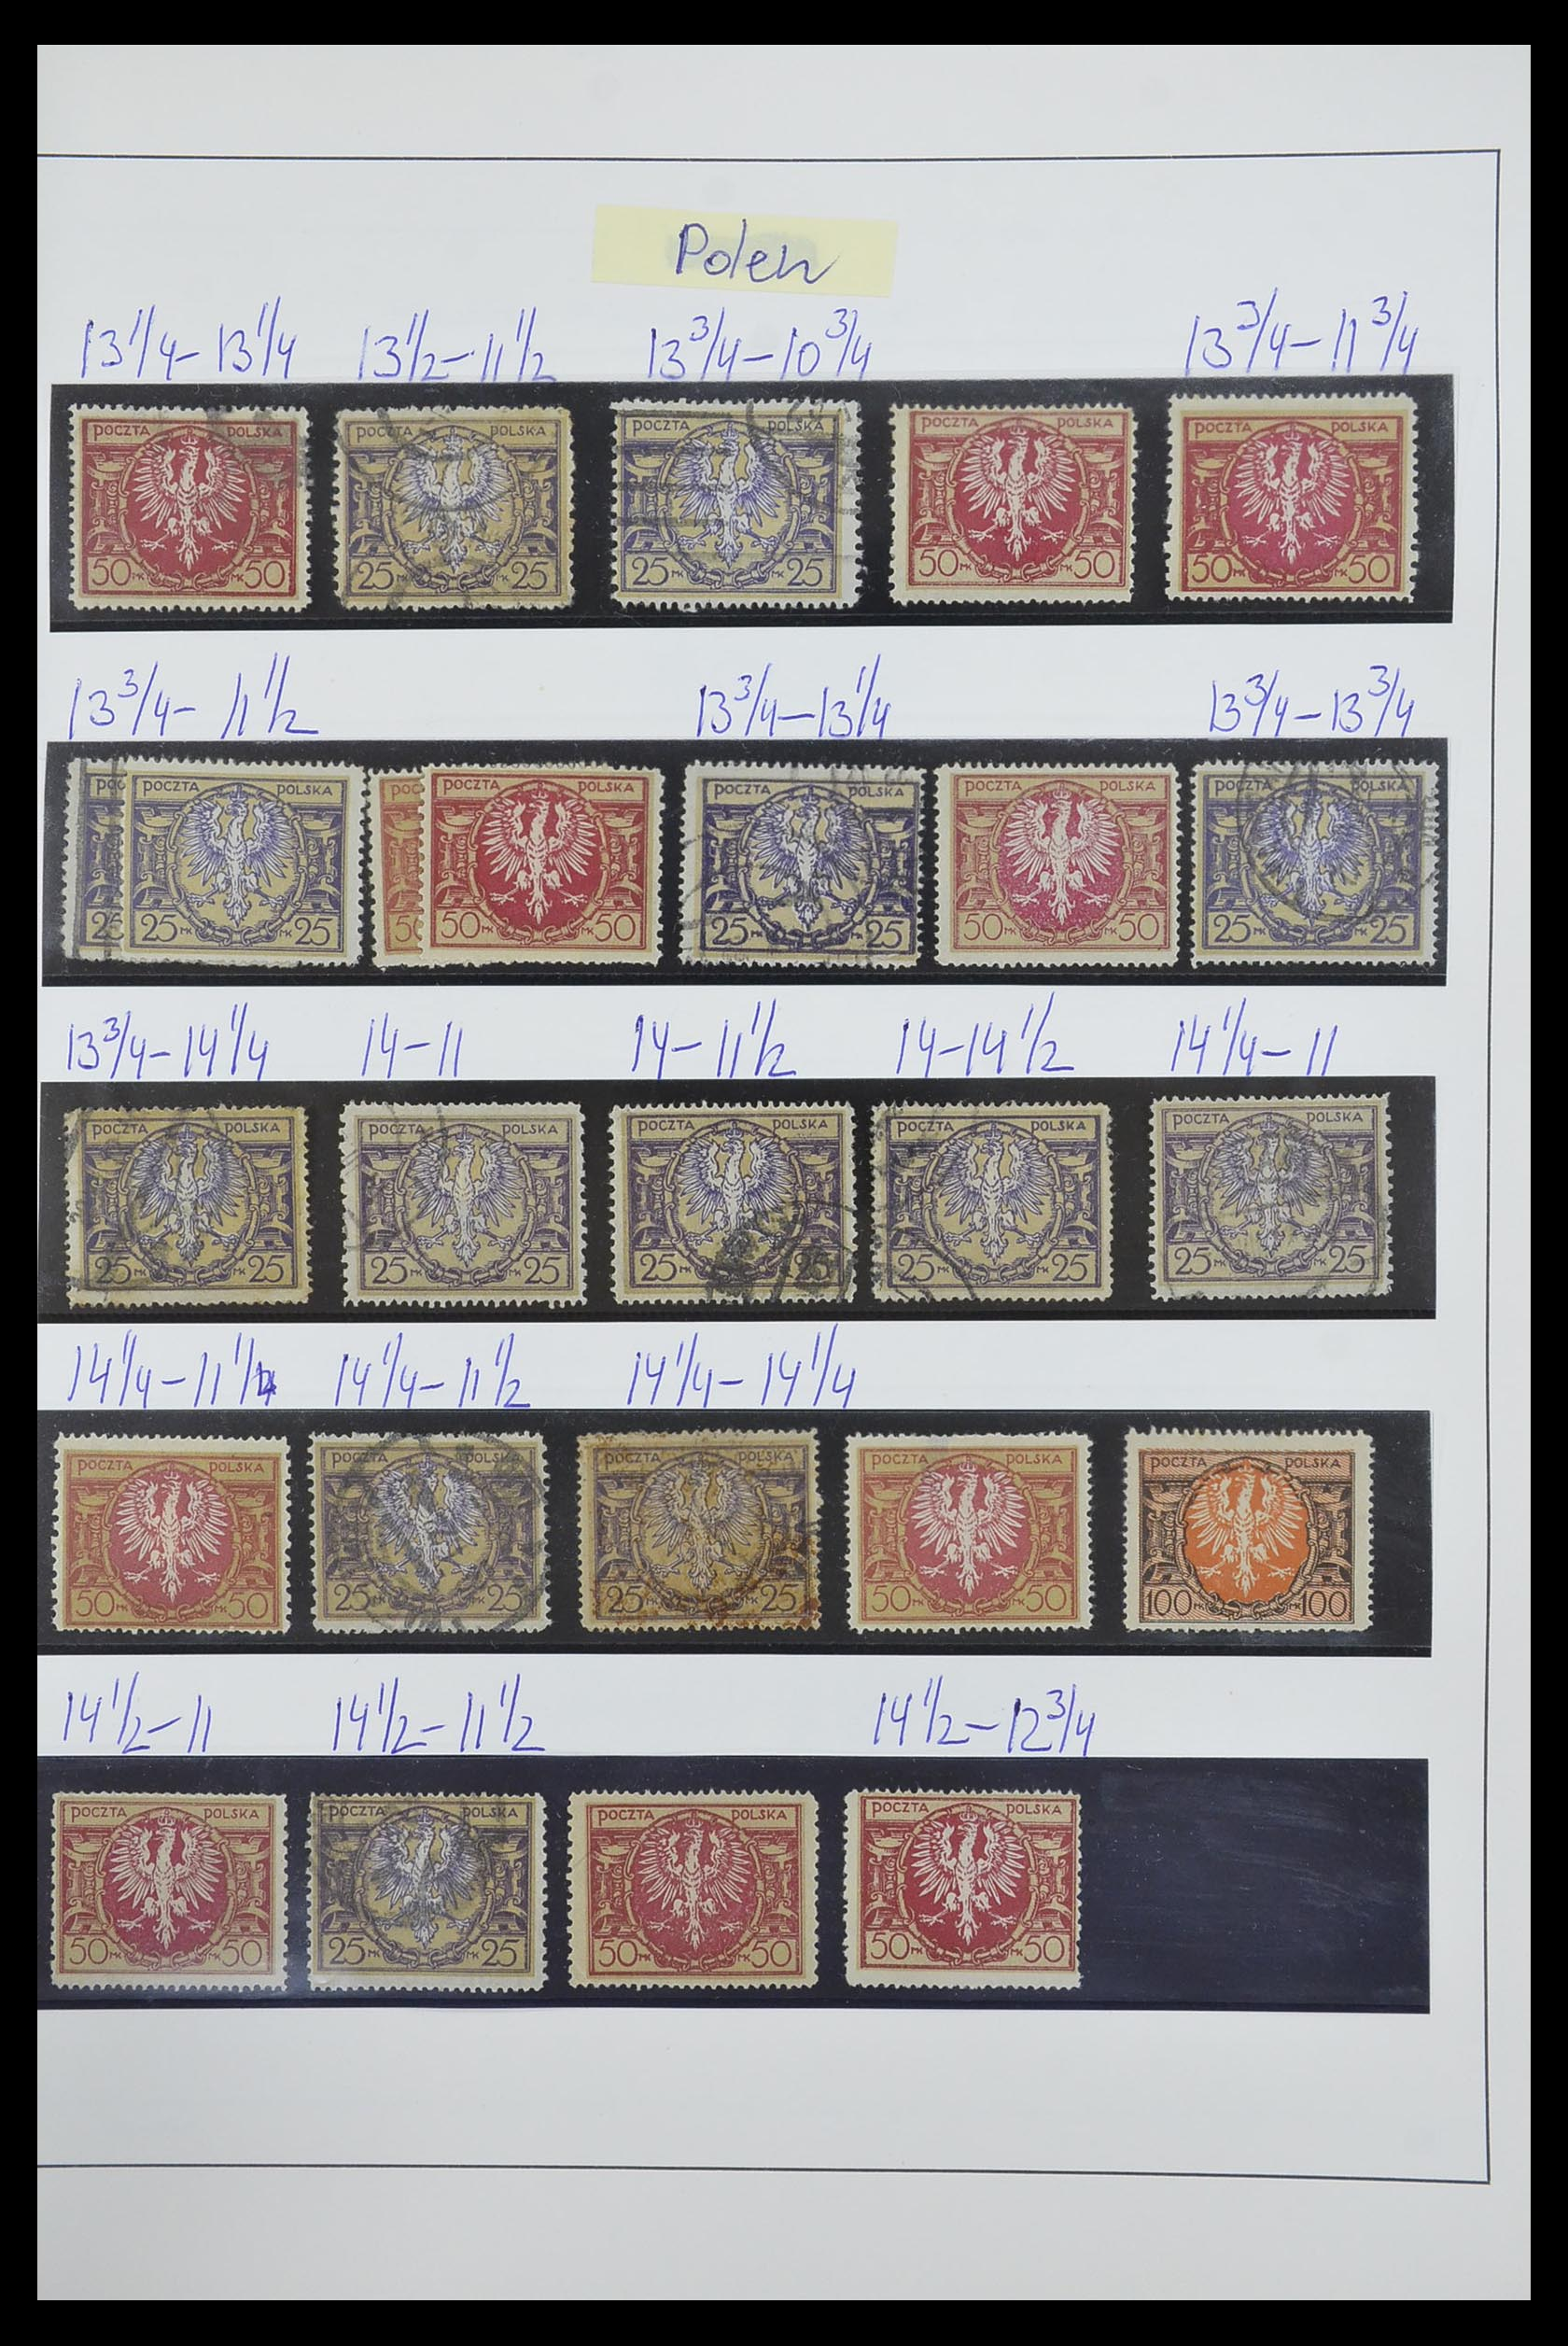 Lot 19137 - polen  -  Auktionshaus Christoph Gärtner GmbH & Co. KG 50th Auction Anniversary Auction - Day 5